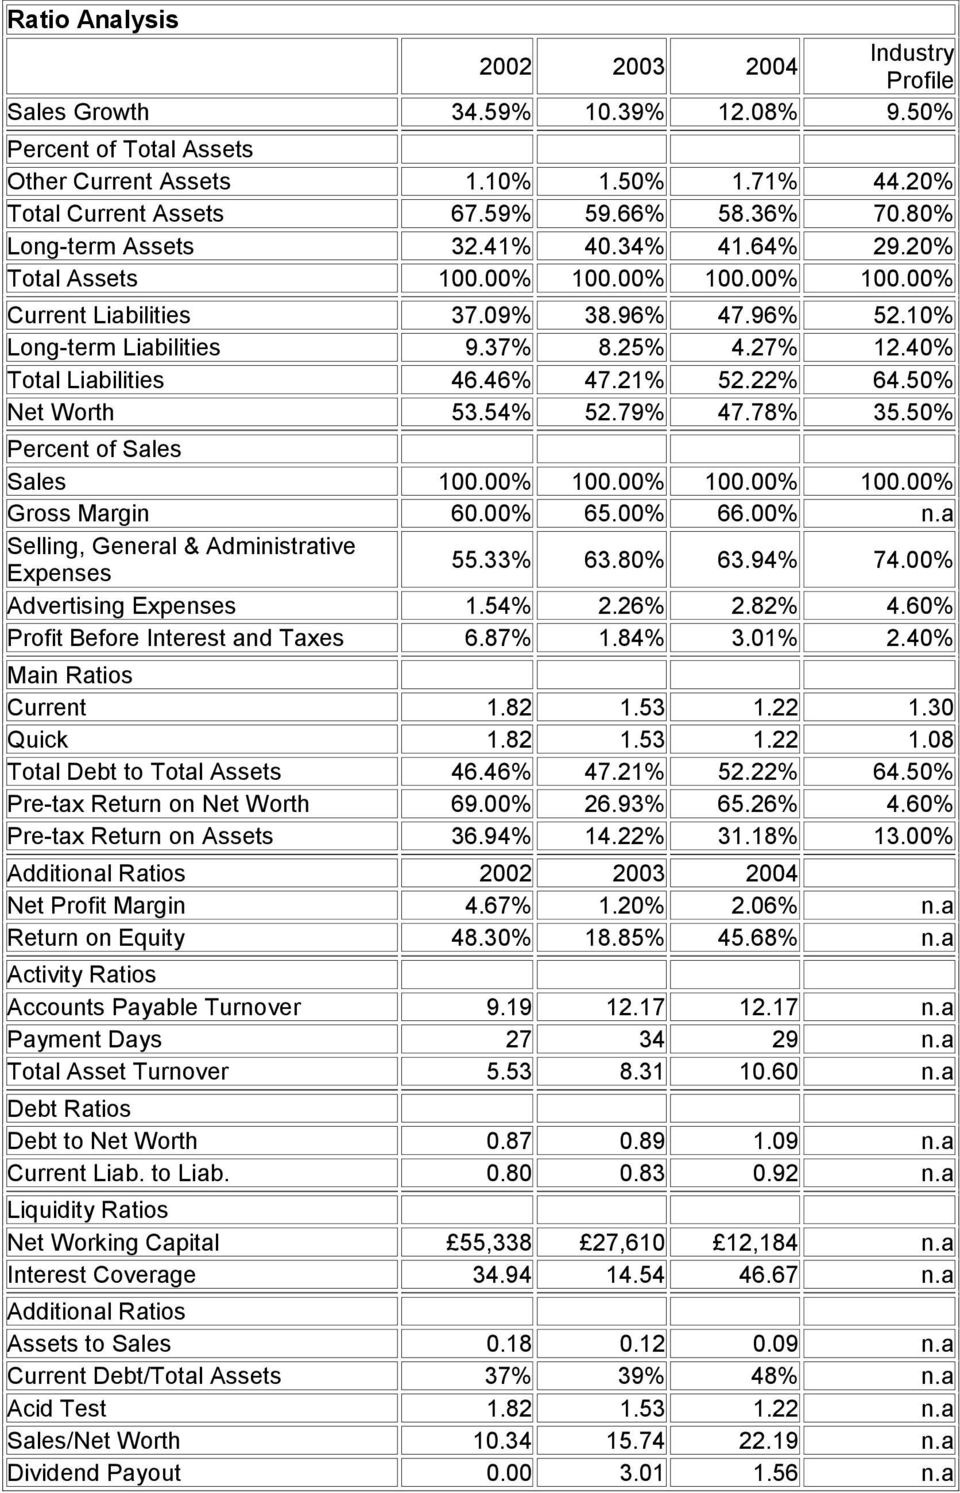 40% Main Ratios Current Quick Total Debt to Total Assets Pre-tax Return on Net Worth Pre-tax Return on Assets 1.82 1.82 46.46% 69.00% 36.94% 1.53 1.53 47.21% 26.93% 14.22% 1.22 1.22 52.22% 65.26% 31.